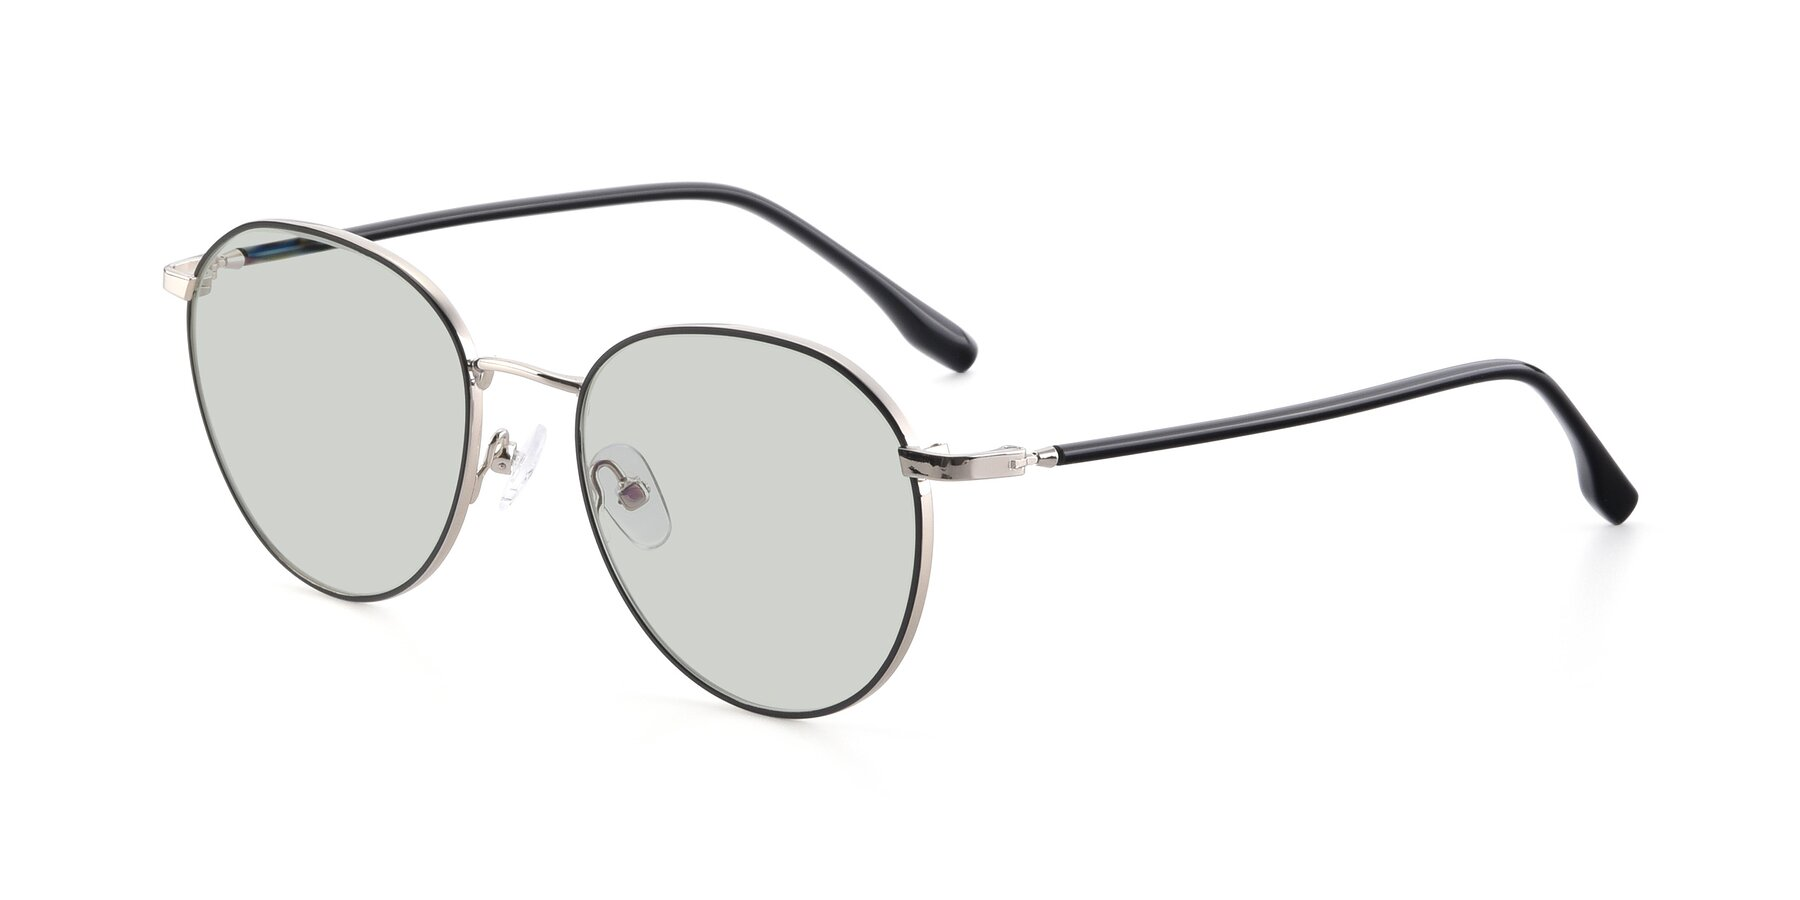 Angle of 9553 in Black-Silver with Light Green Tinted Lenses